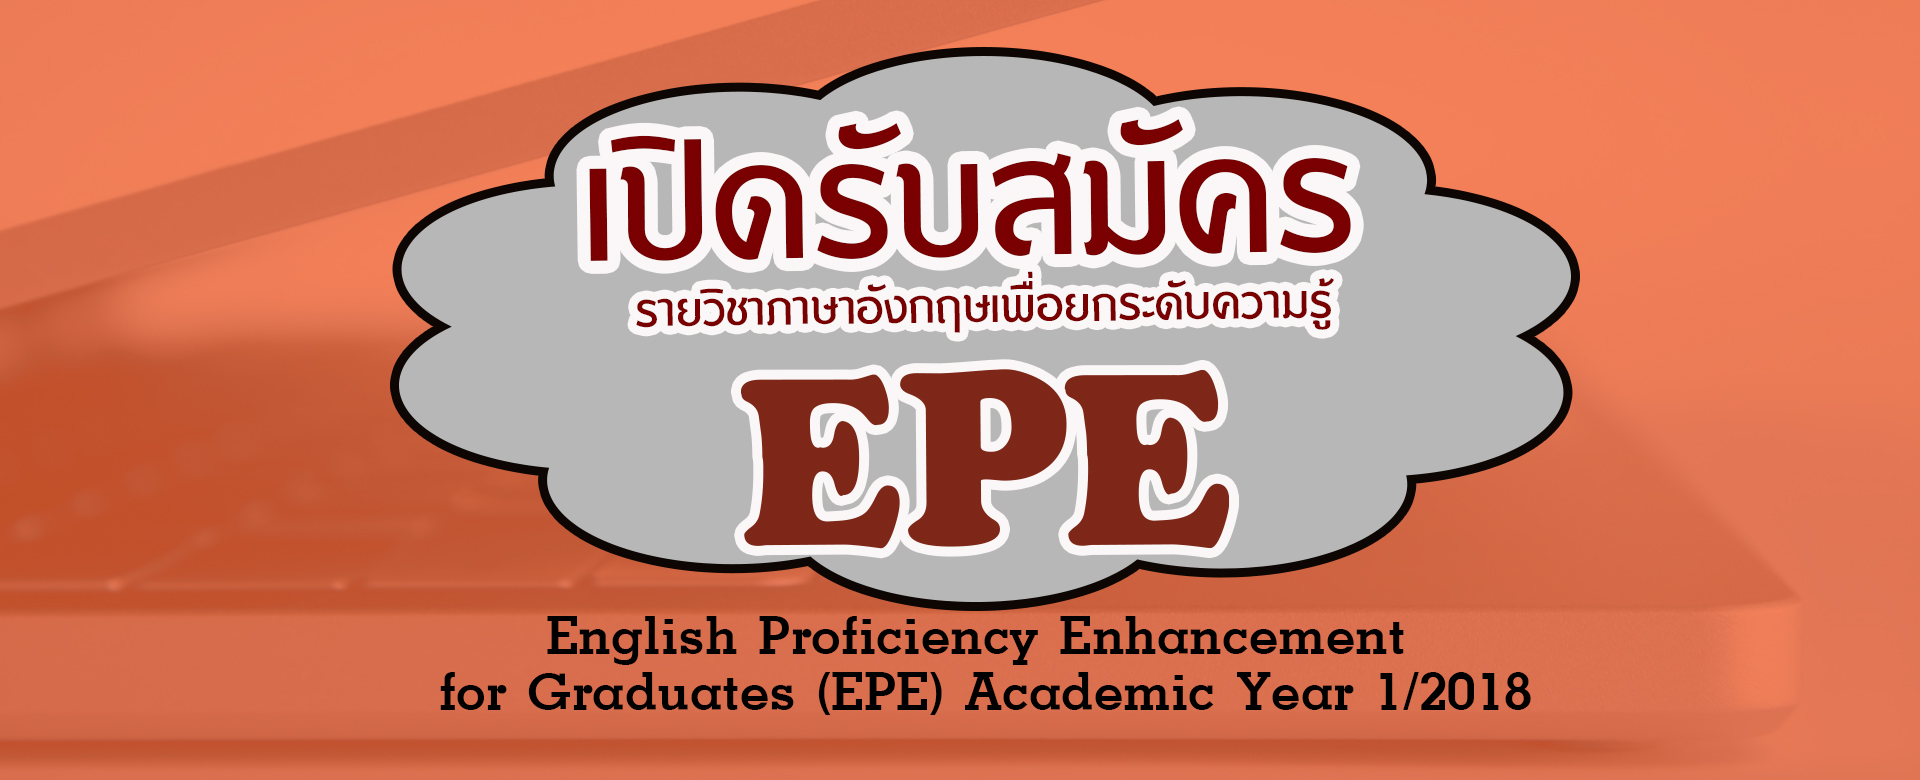 Registration English Proficiency Enhancement for Graduates (EPE) Academic Year 1/2018